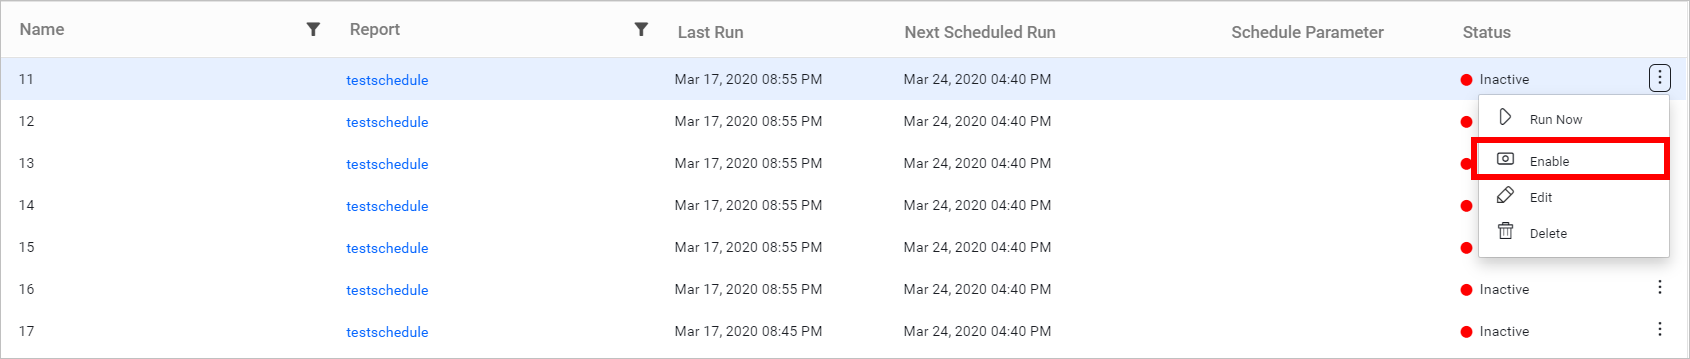 Enable schedule option.